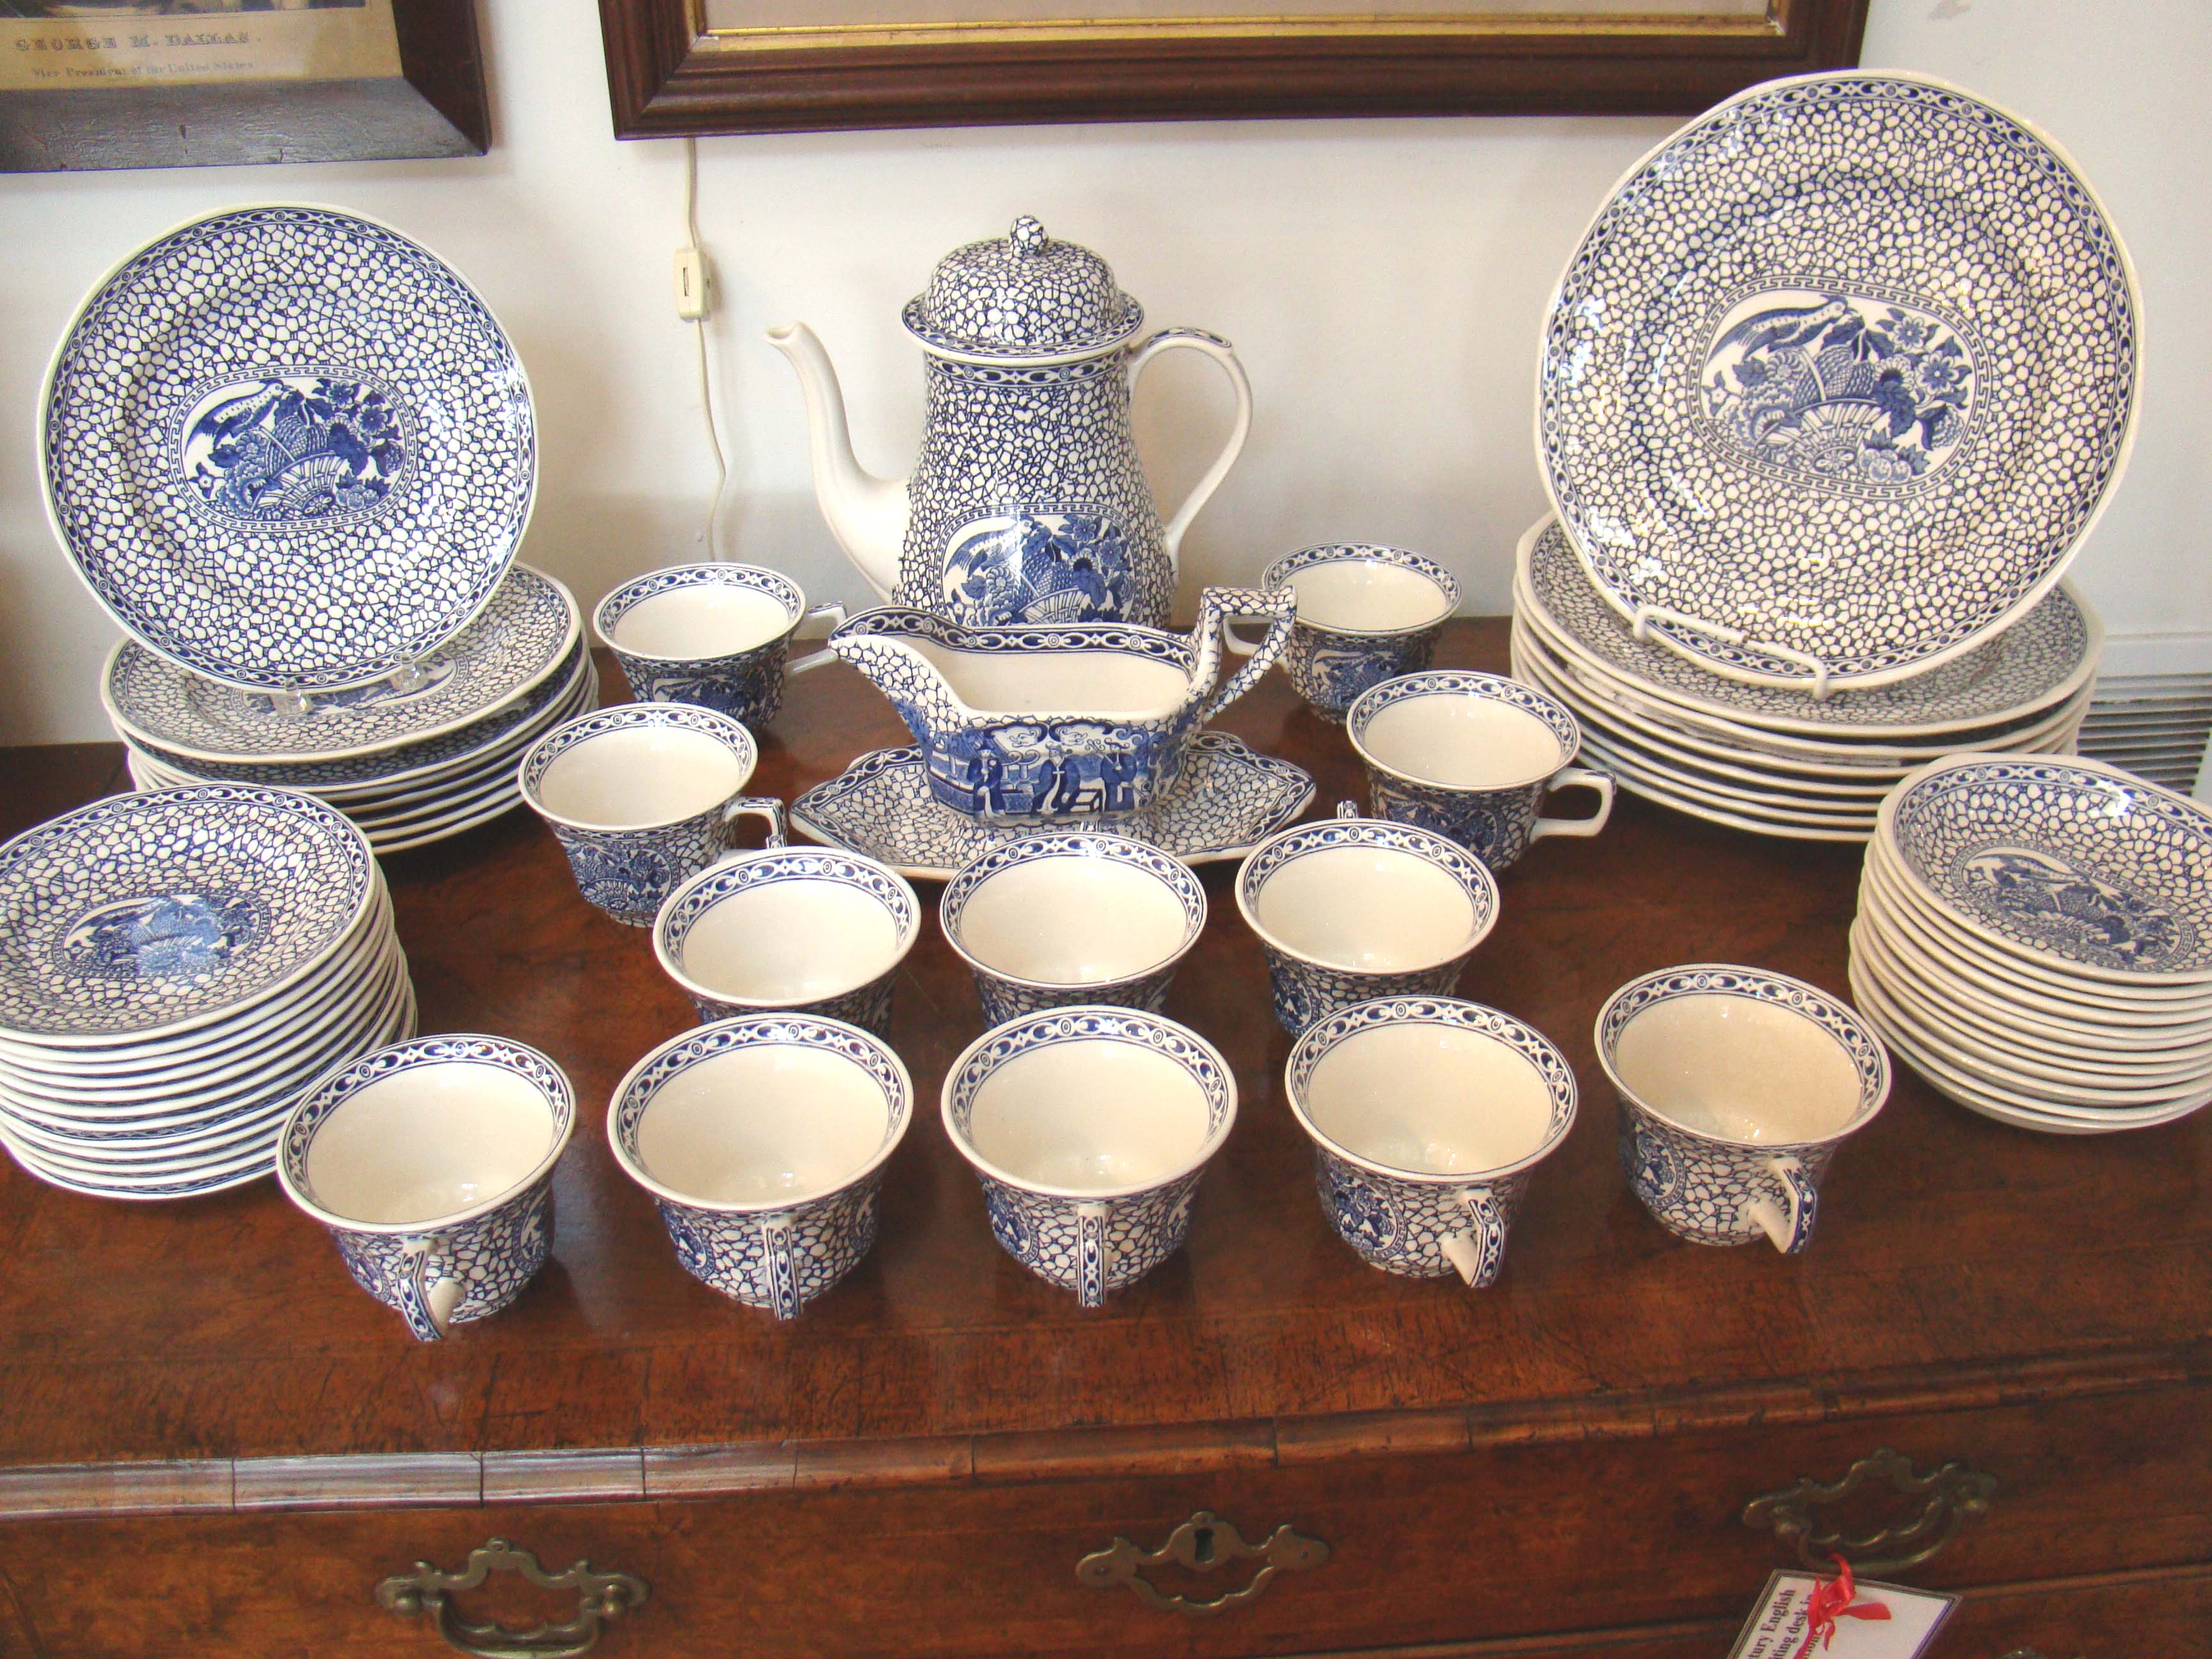 click to view larger image of A fine Chinese Bird dinner service by William Adams based on a set first made in 1780